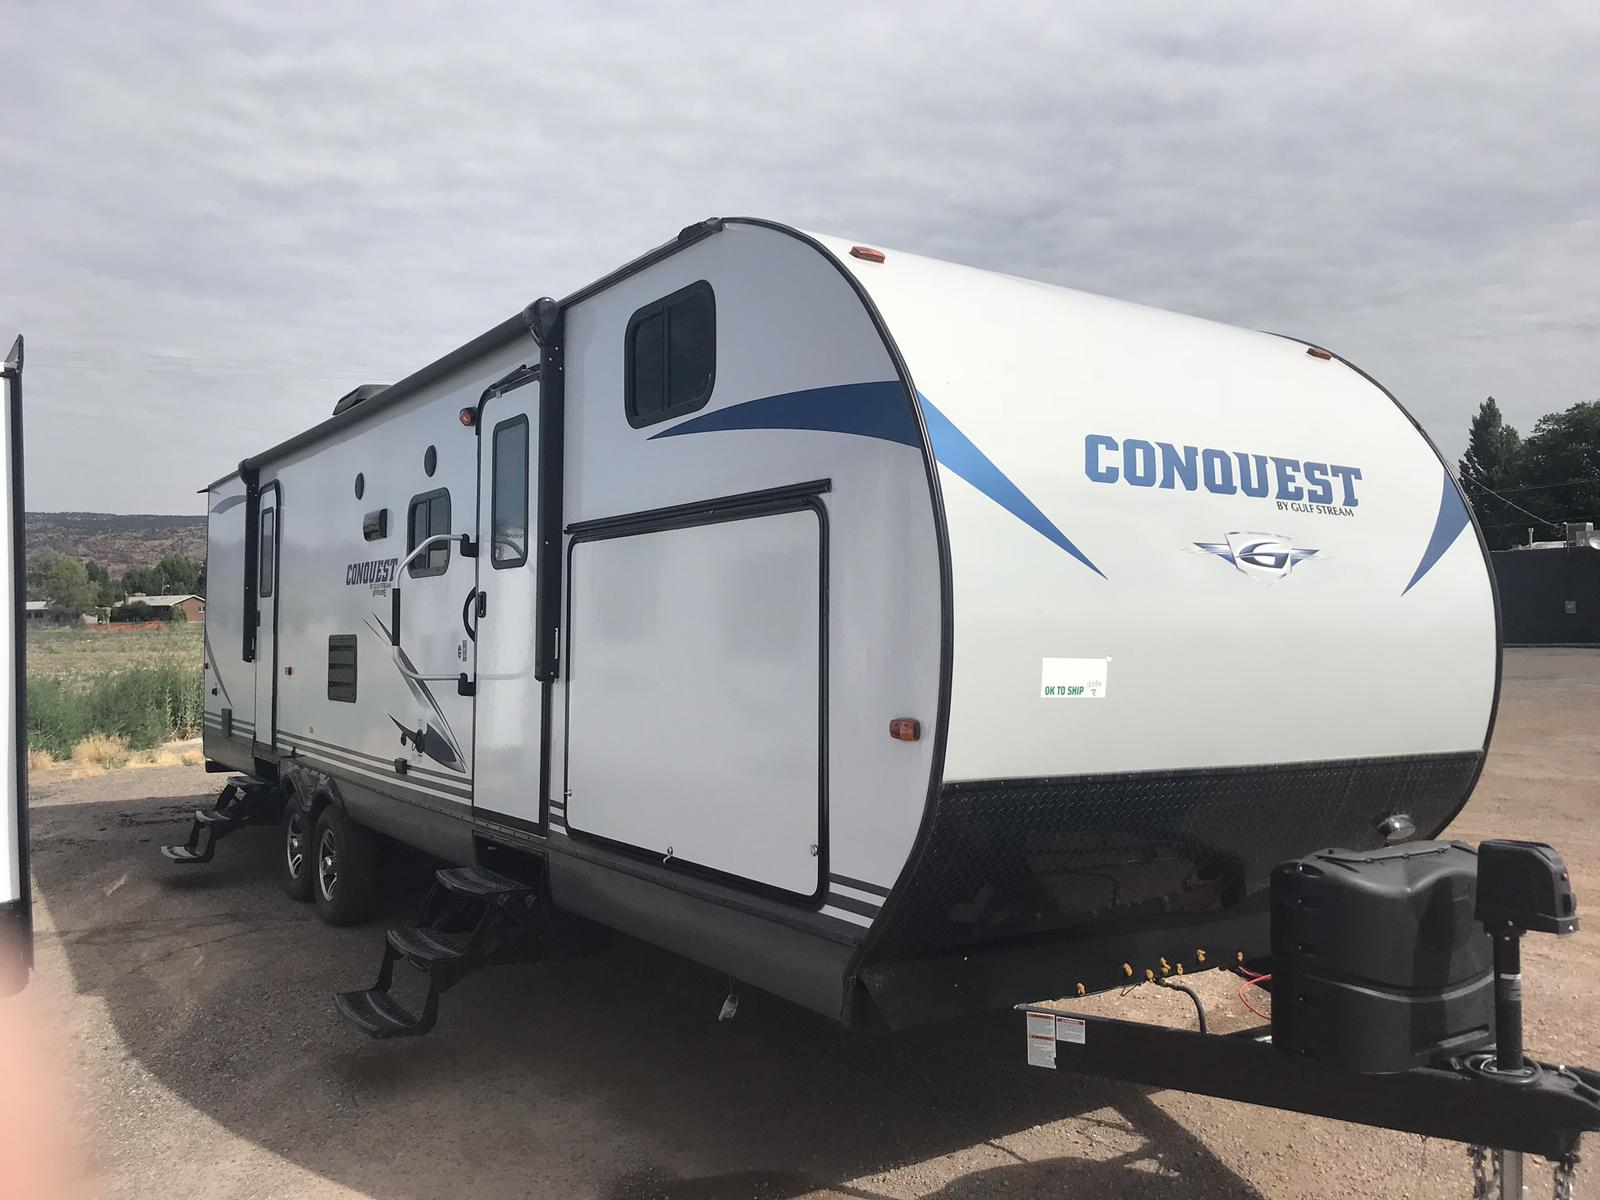 2019 conquest by gulf stream 30frk